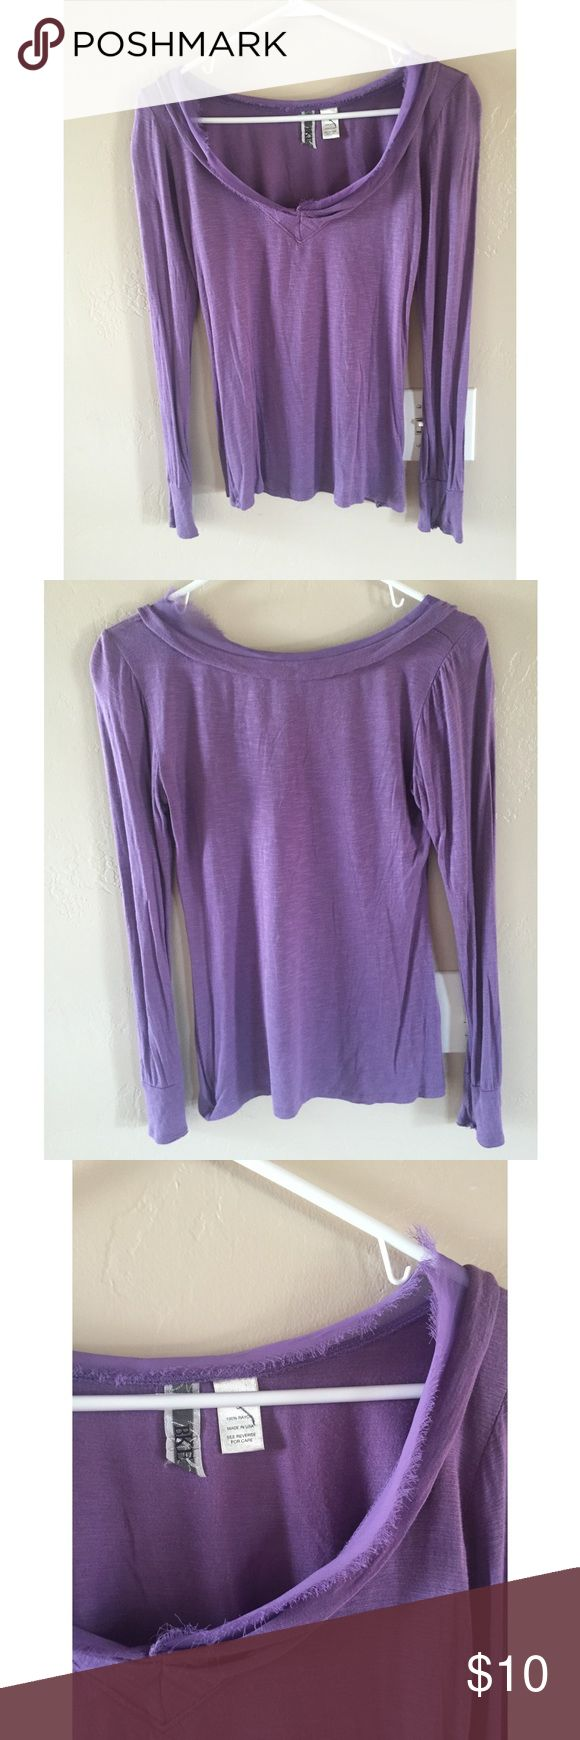 ✨5/$10✨BKE Purple Long Sleeve Top Small mark on tag to prevent returns. A bit lighter in person. Color is closest to last picture. Good condition, no stand out flaws! ✨✨I am adding lots of $5 items! Feel free to make a bundle offer on them.✨✨ BKE Tops